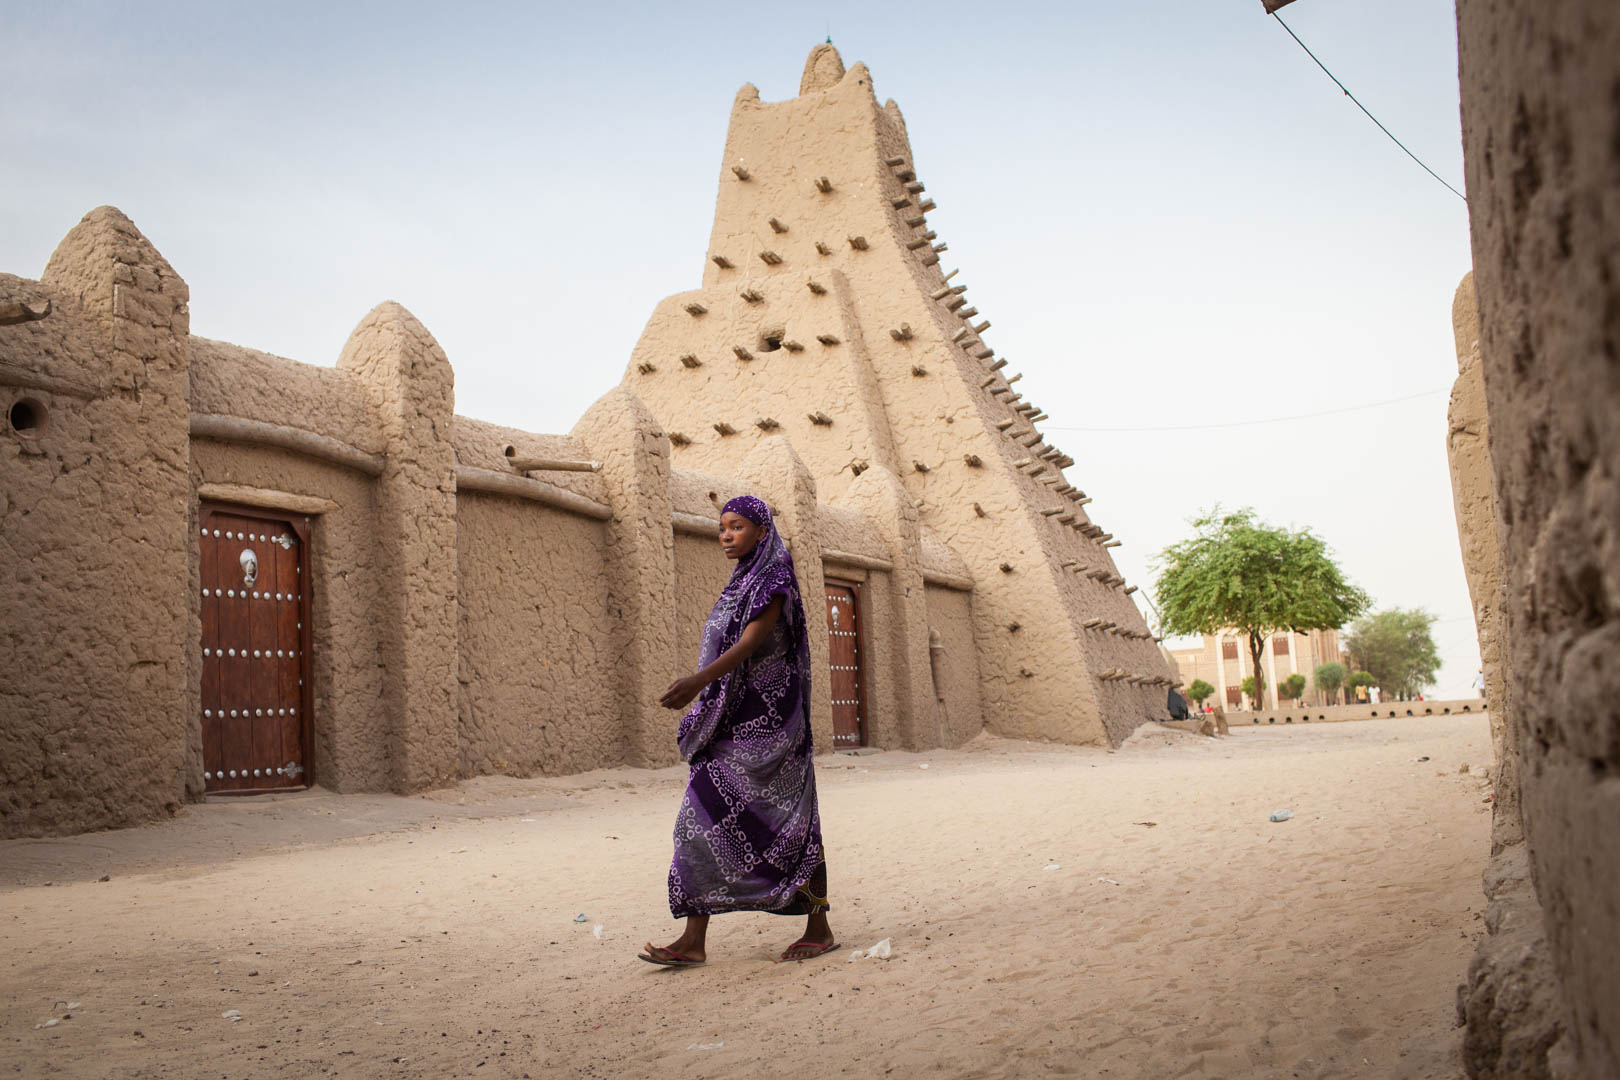 A Malian woman walks next to the Sankore mosque, one of three clay-built mosques in Timbuktu being recognised as UNESCO world-heritage sites. They have been left unharmed by the Islamist groups.